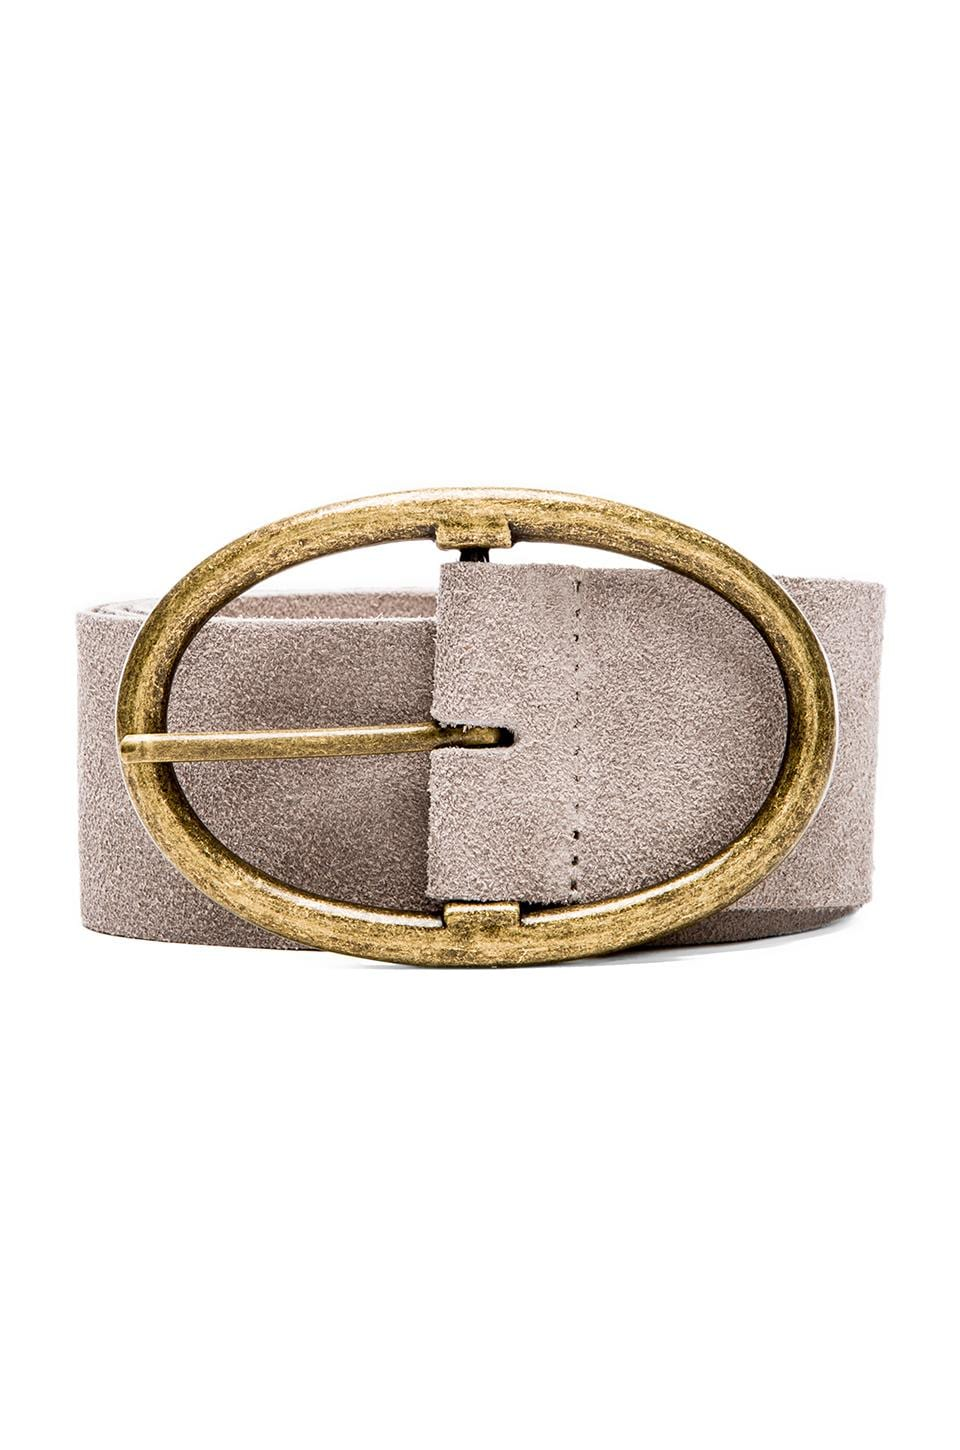 Rachel Pally Suede Belt in Brown